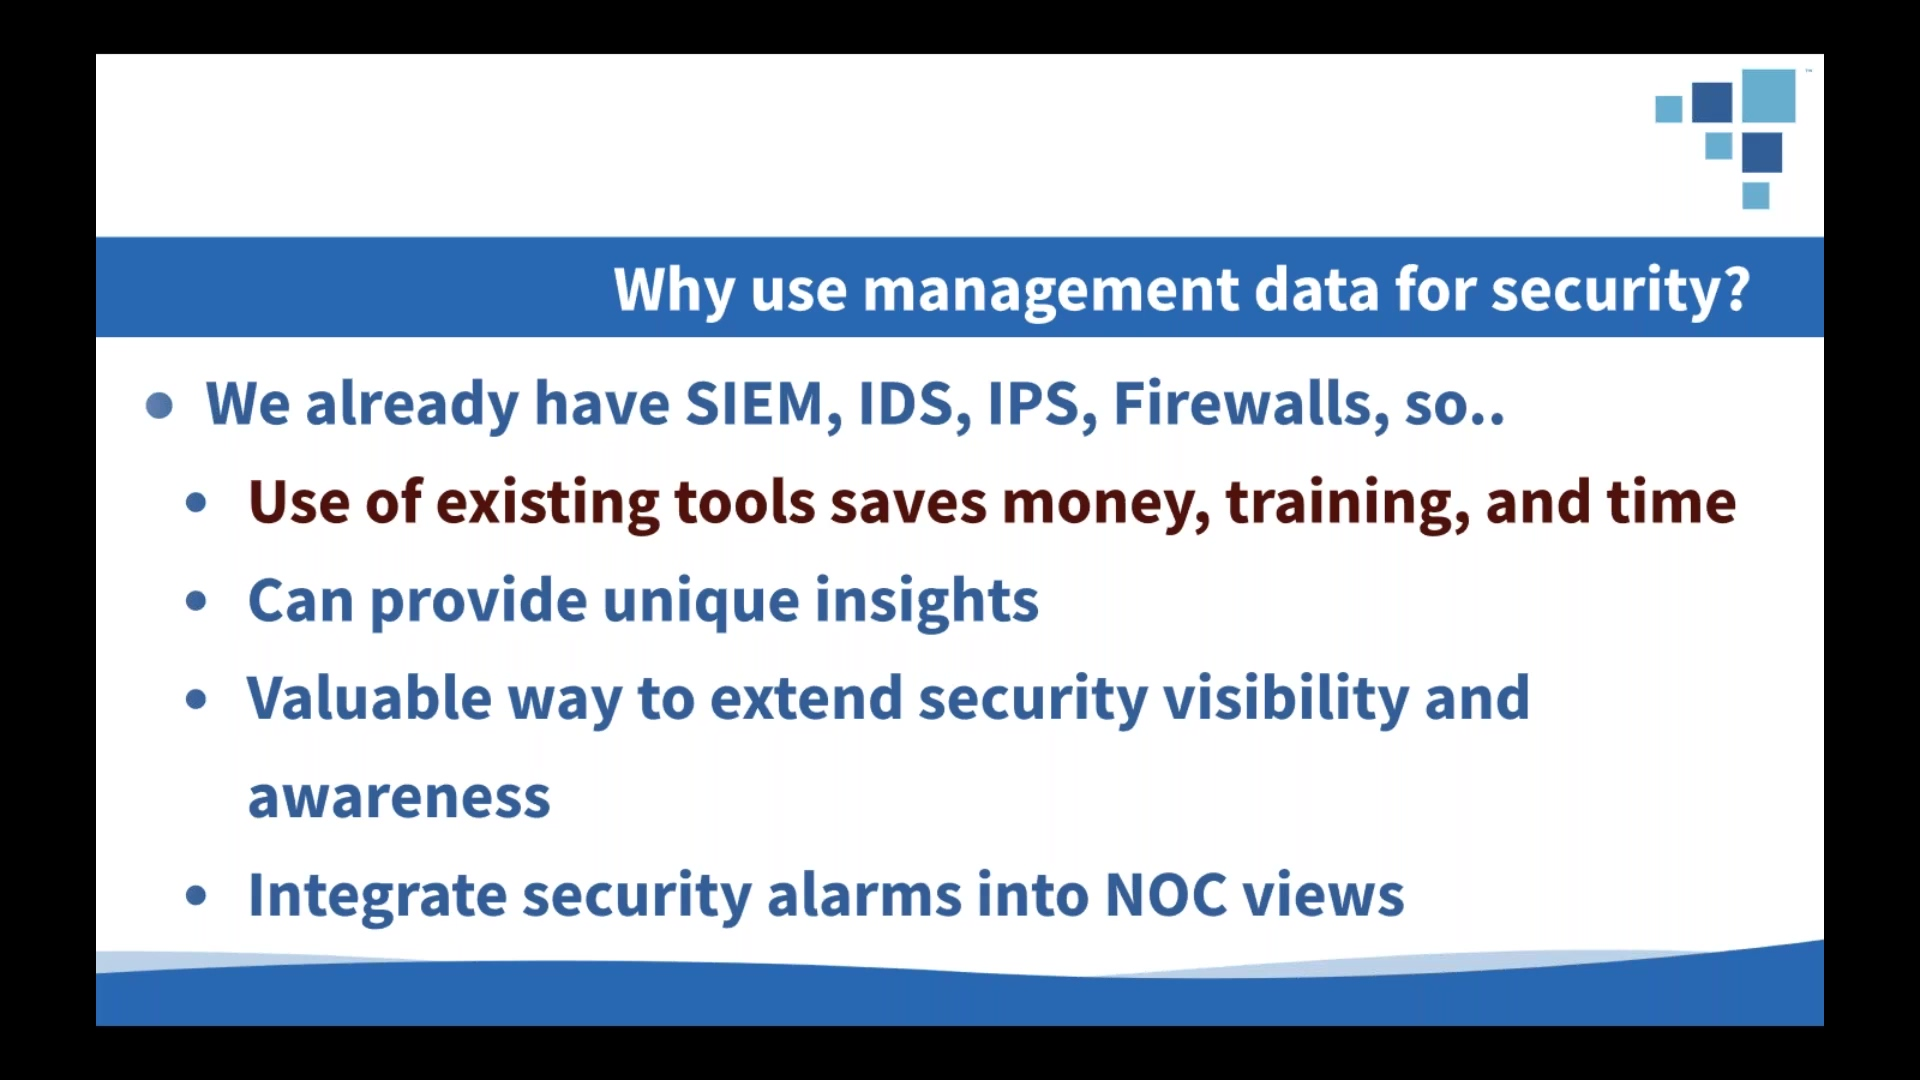 5 Ways to Leverage Management Data to Improve Data Security